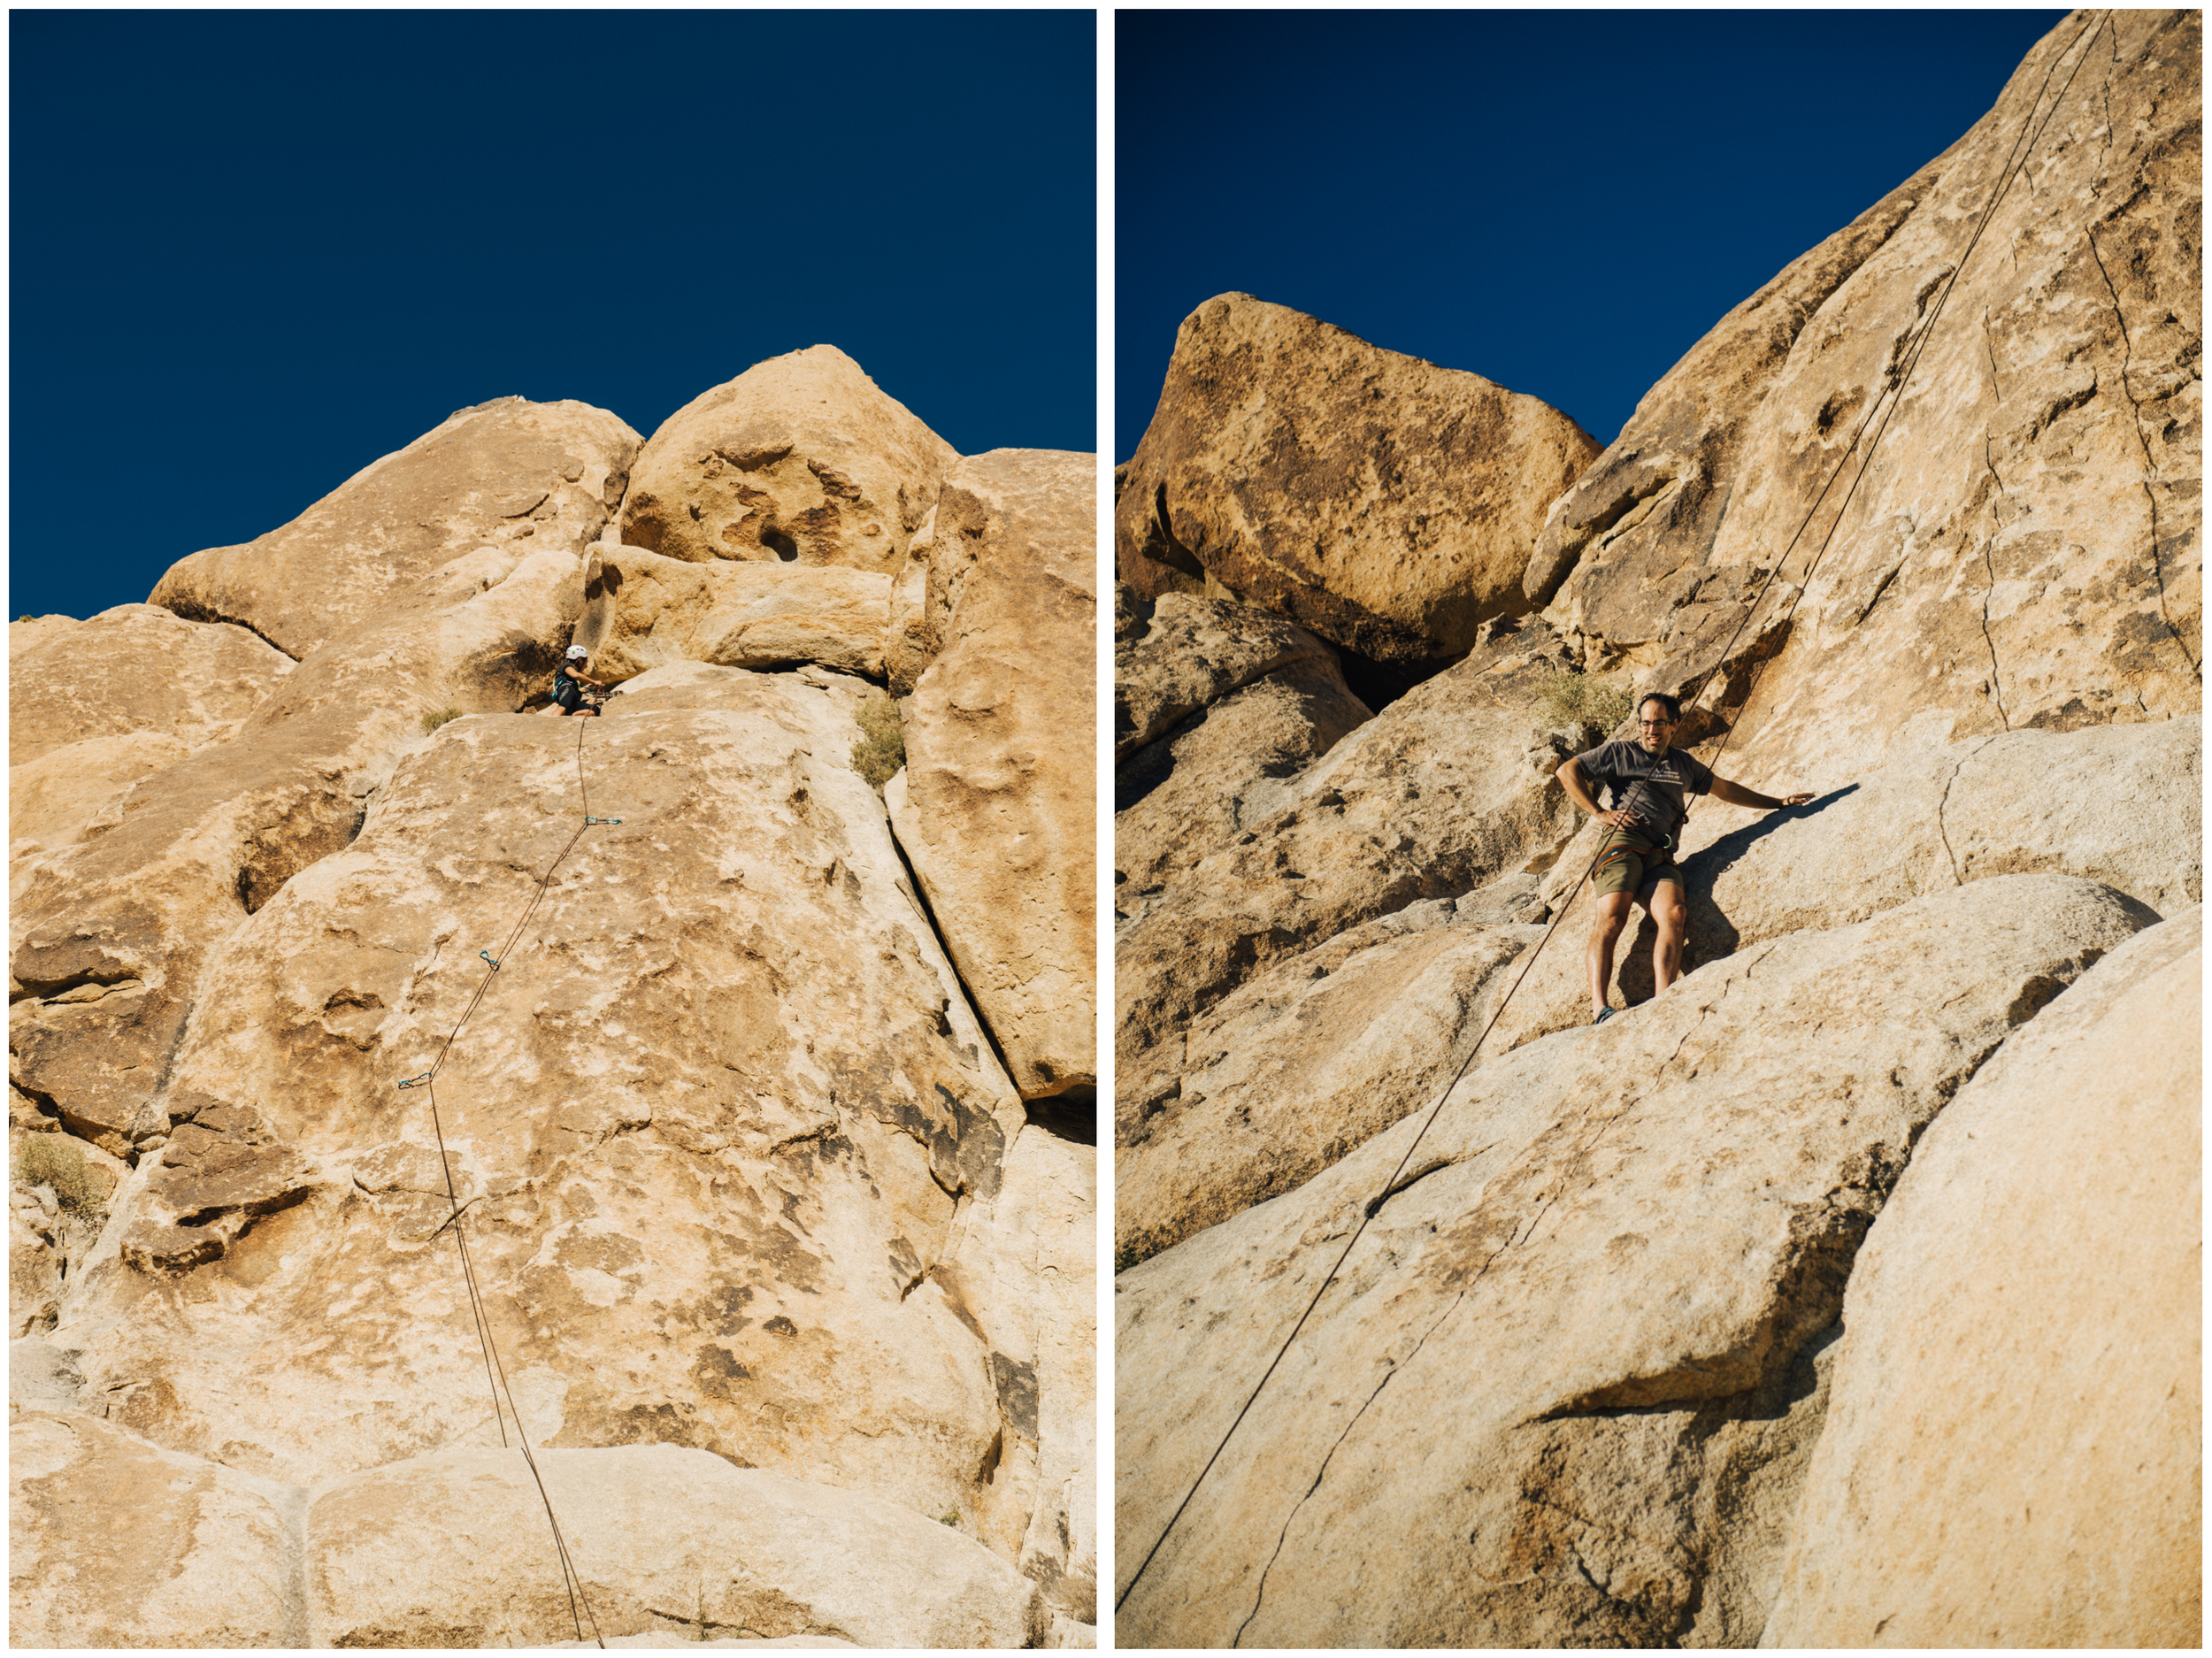 Left: Jennifer leading a crazy 5.7 (called Feminine Itch, obviously named by a dirtbag woman!)... Oh Joshua Tree, you are always so full of surprises (major runouts, missing bolts, etc.)! You never know what you'll find once up there! Right: JF resting after the 5.10c section of this route! He did awesome!